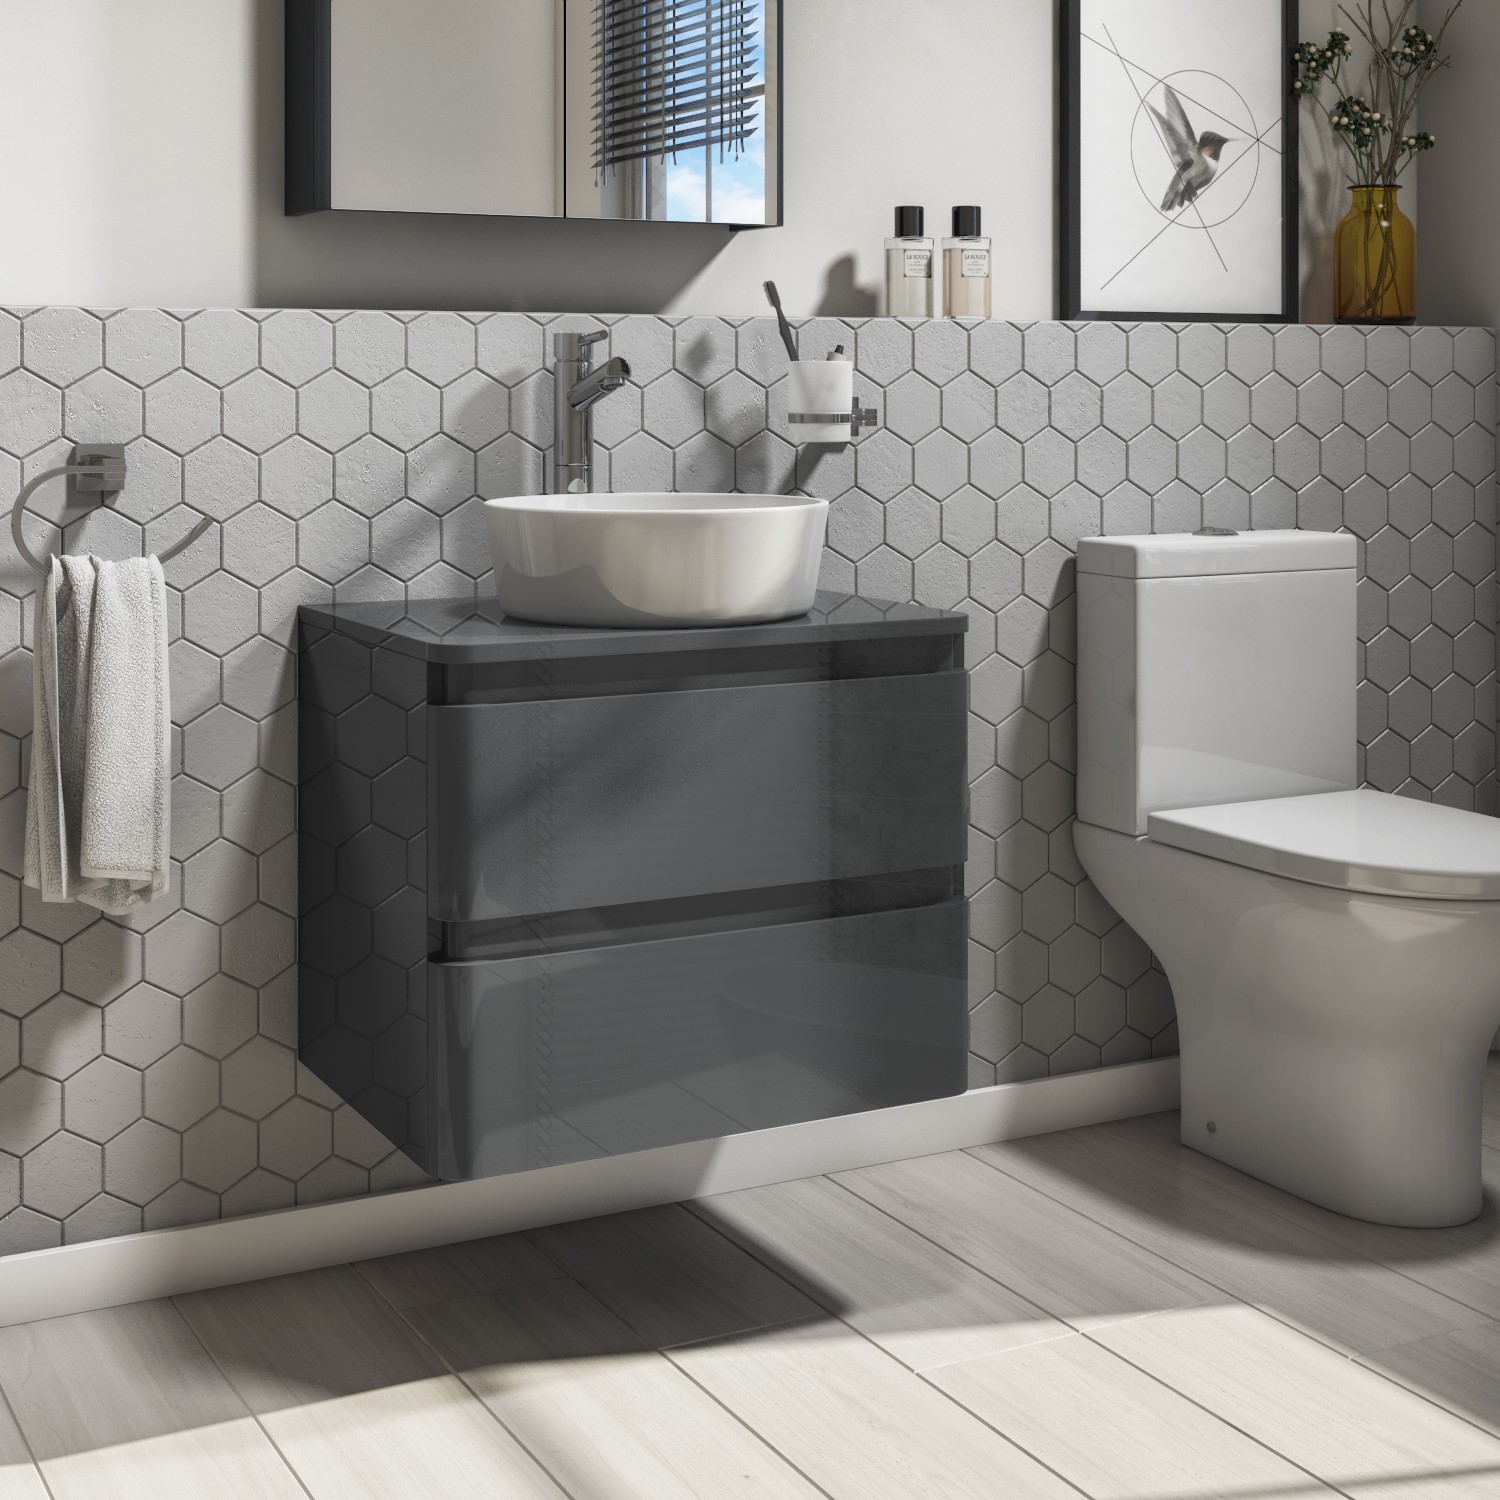 600mm Dark Grey Gloss Wall Hung Vanity Unit With 415mm Countertop Basin 2 Drawers Portland Better Bathrooms